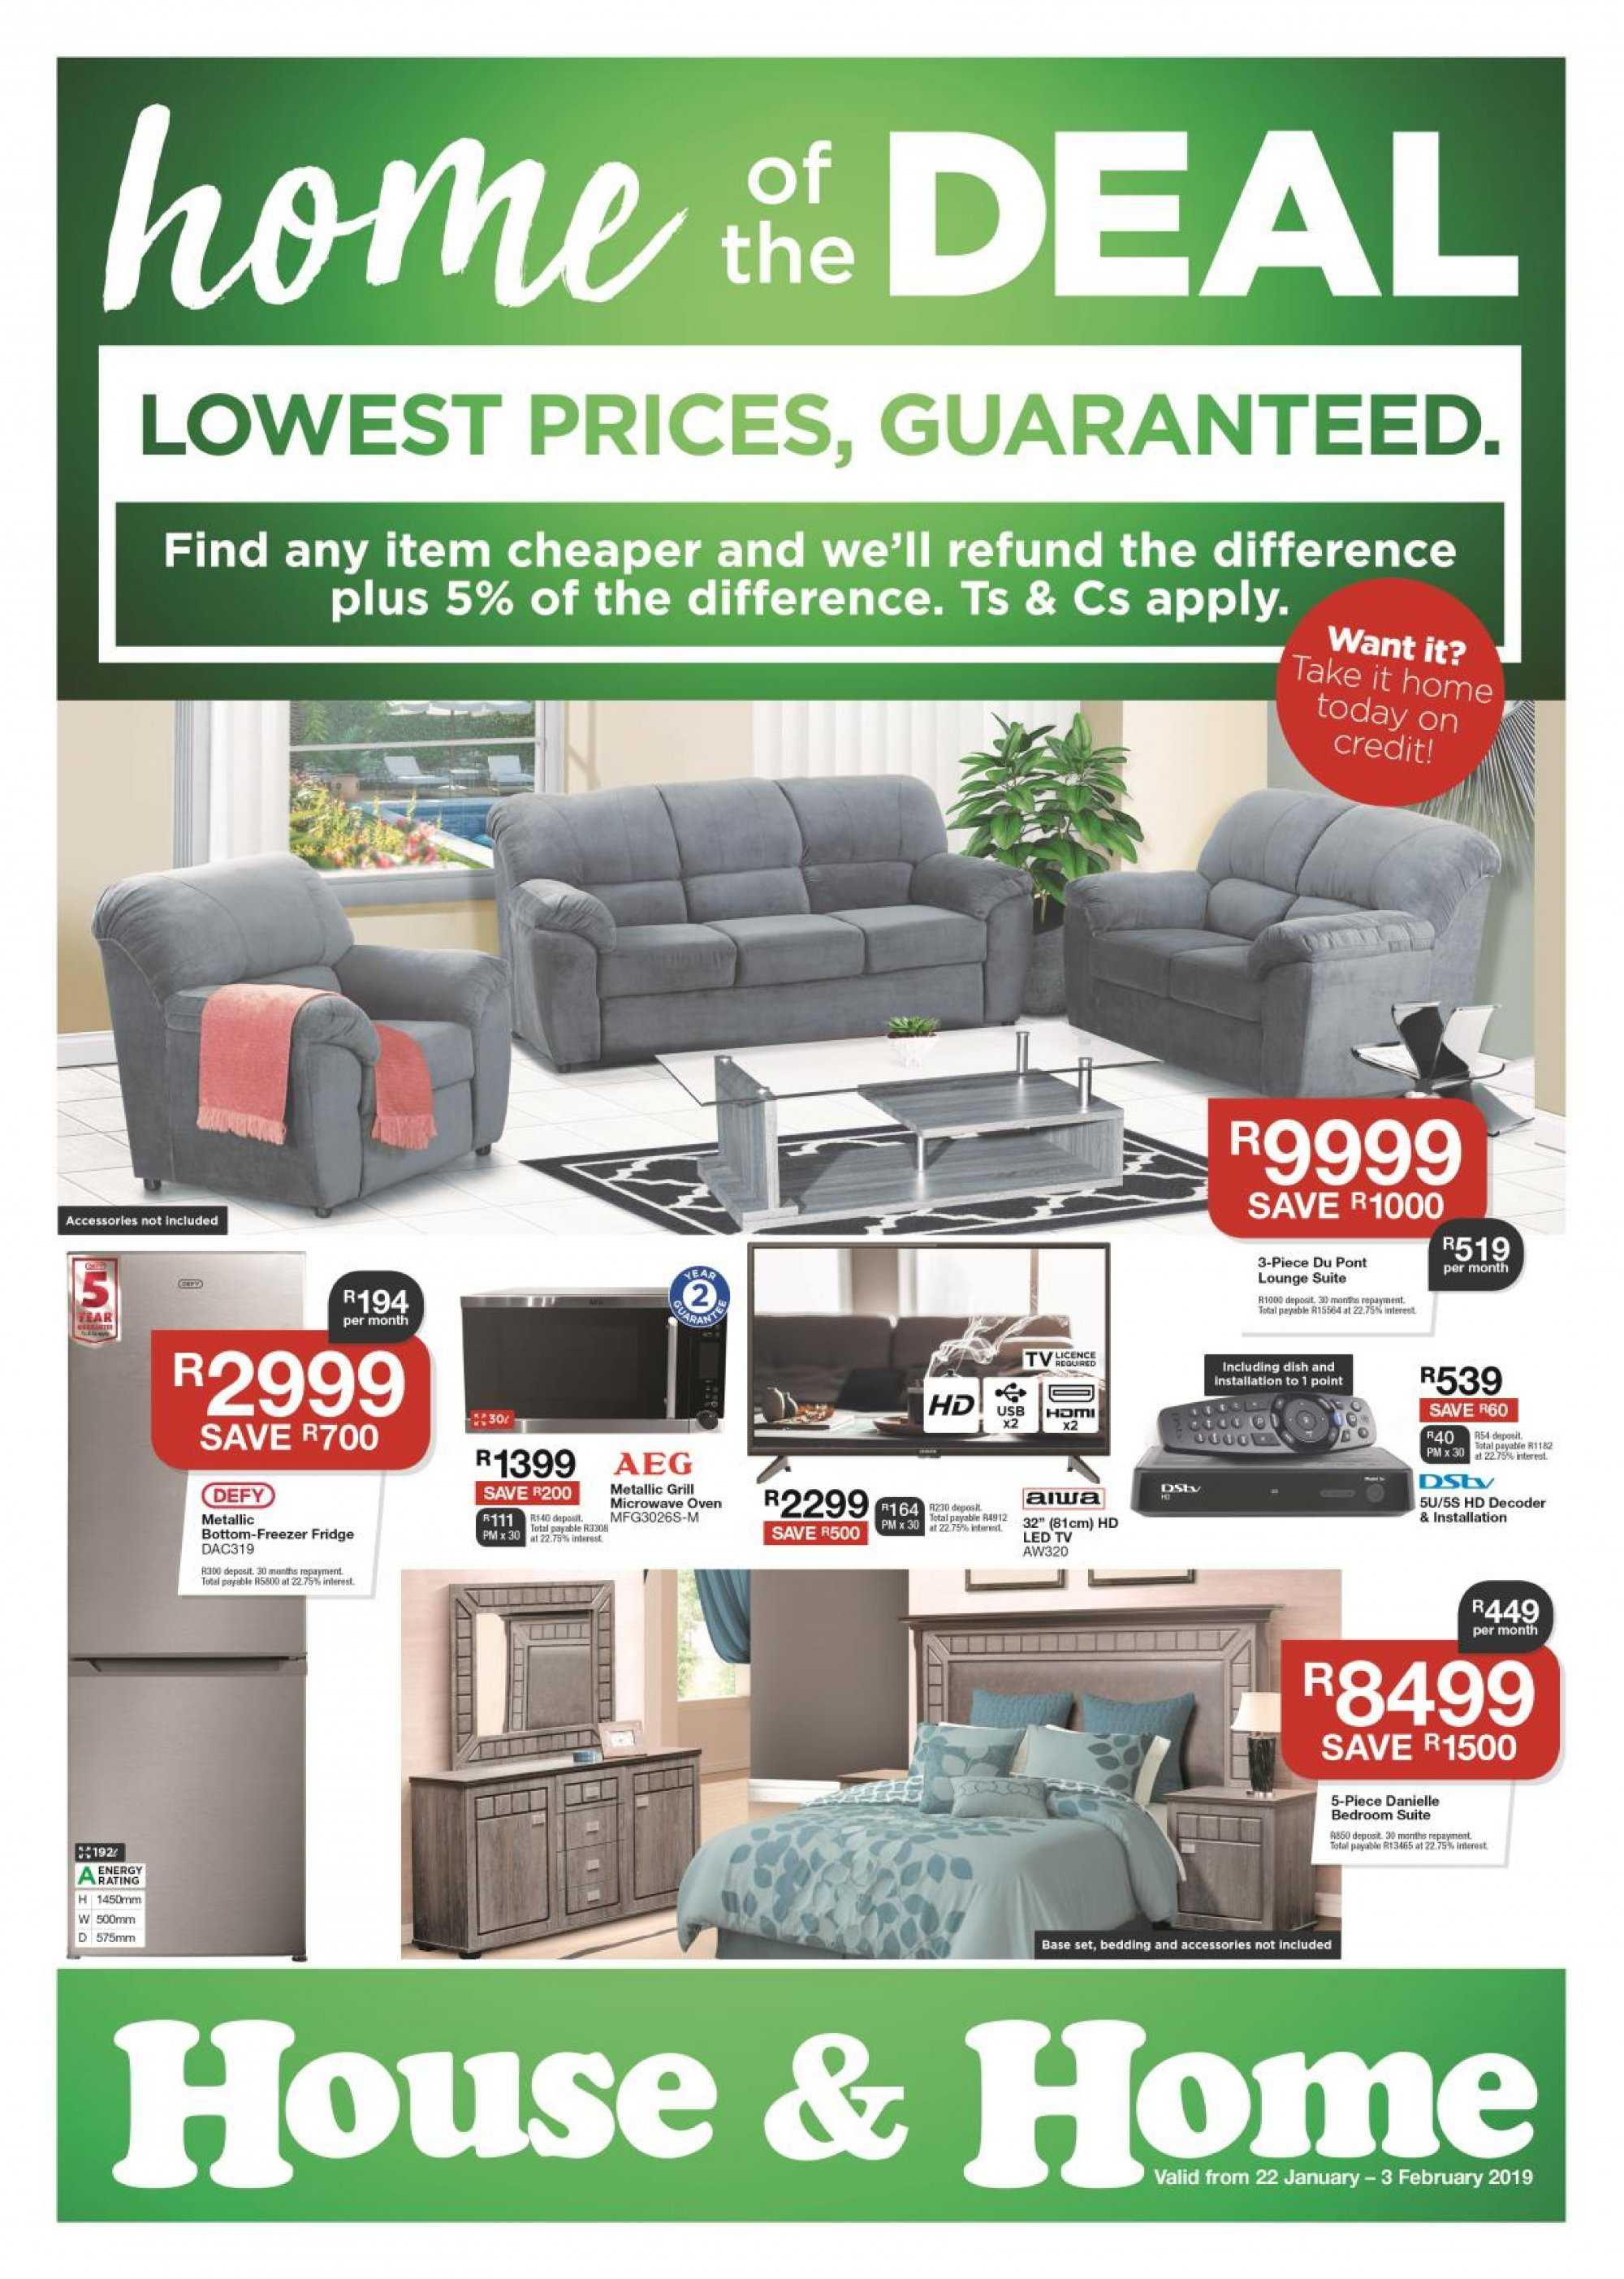 House & Home special - 01.22.2019 - 02.03.2019 - Sales products - aeg, bedding, bottom, freezer, grill, led tv, microwave, fridge, oven. Page 1.